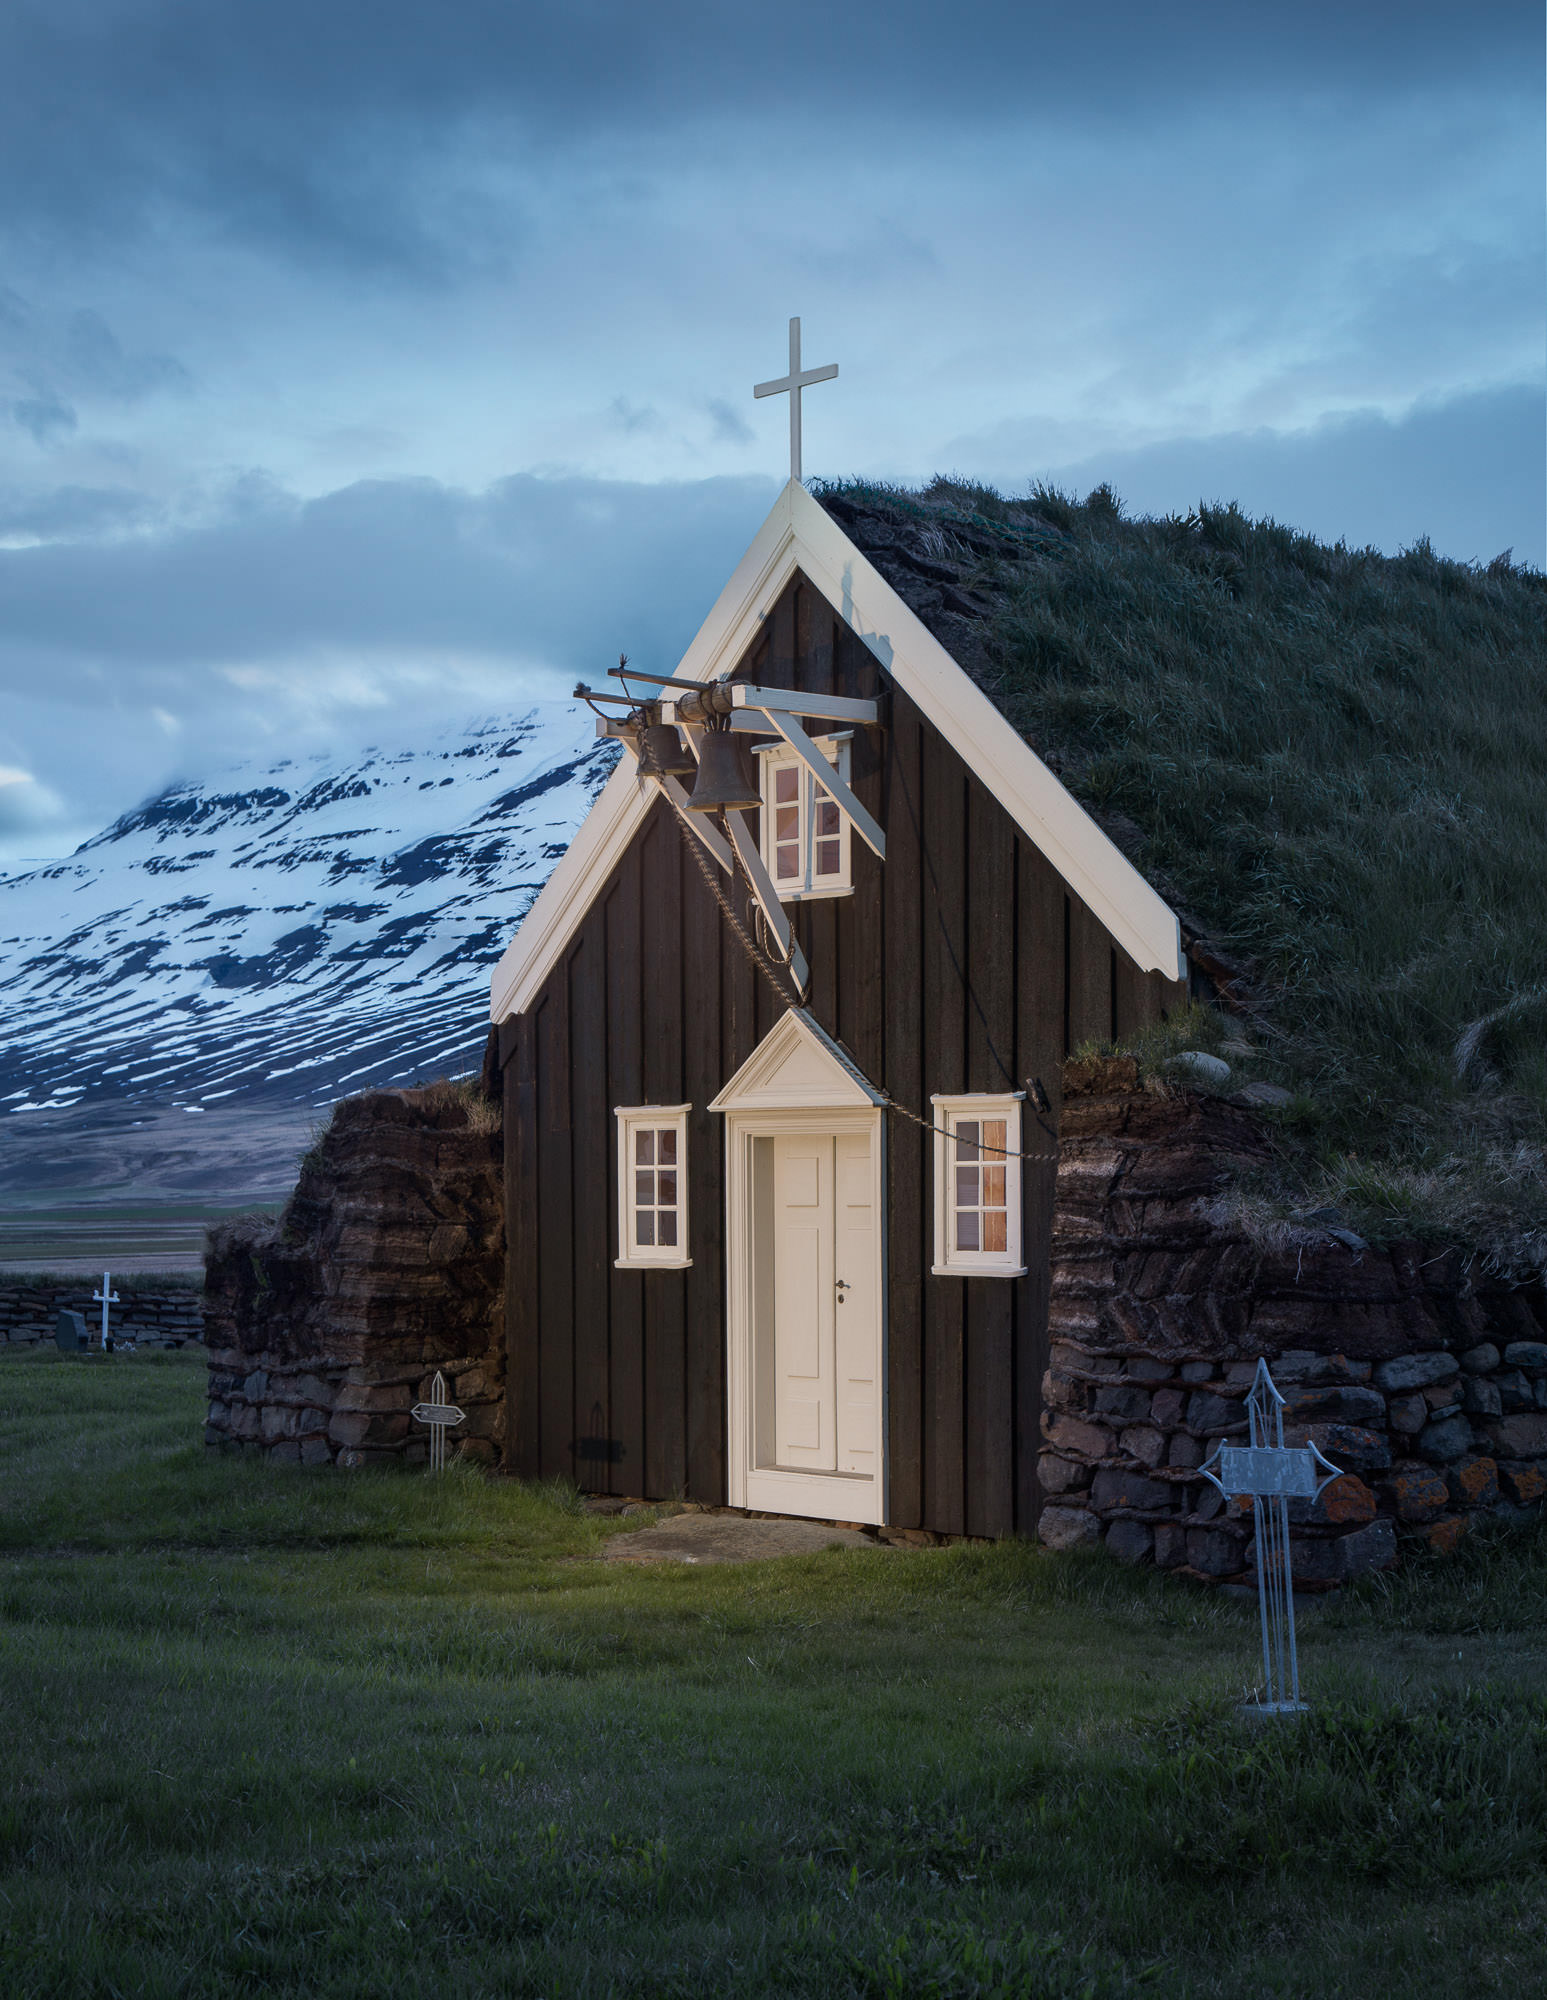 mike-kelley-iceland-architecture-7.jpg